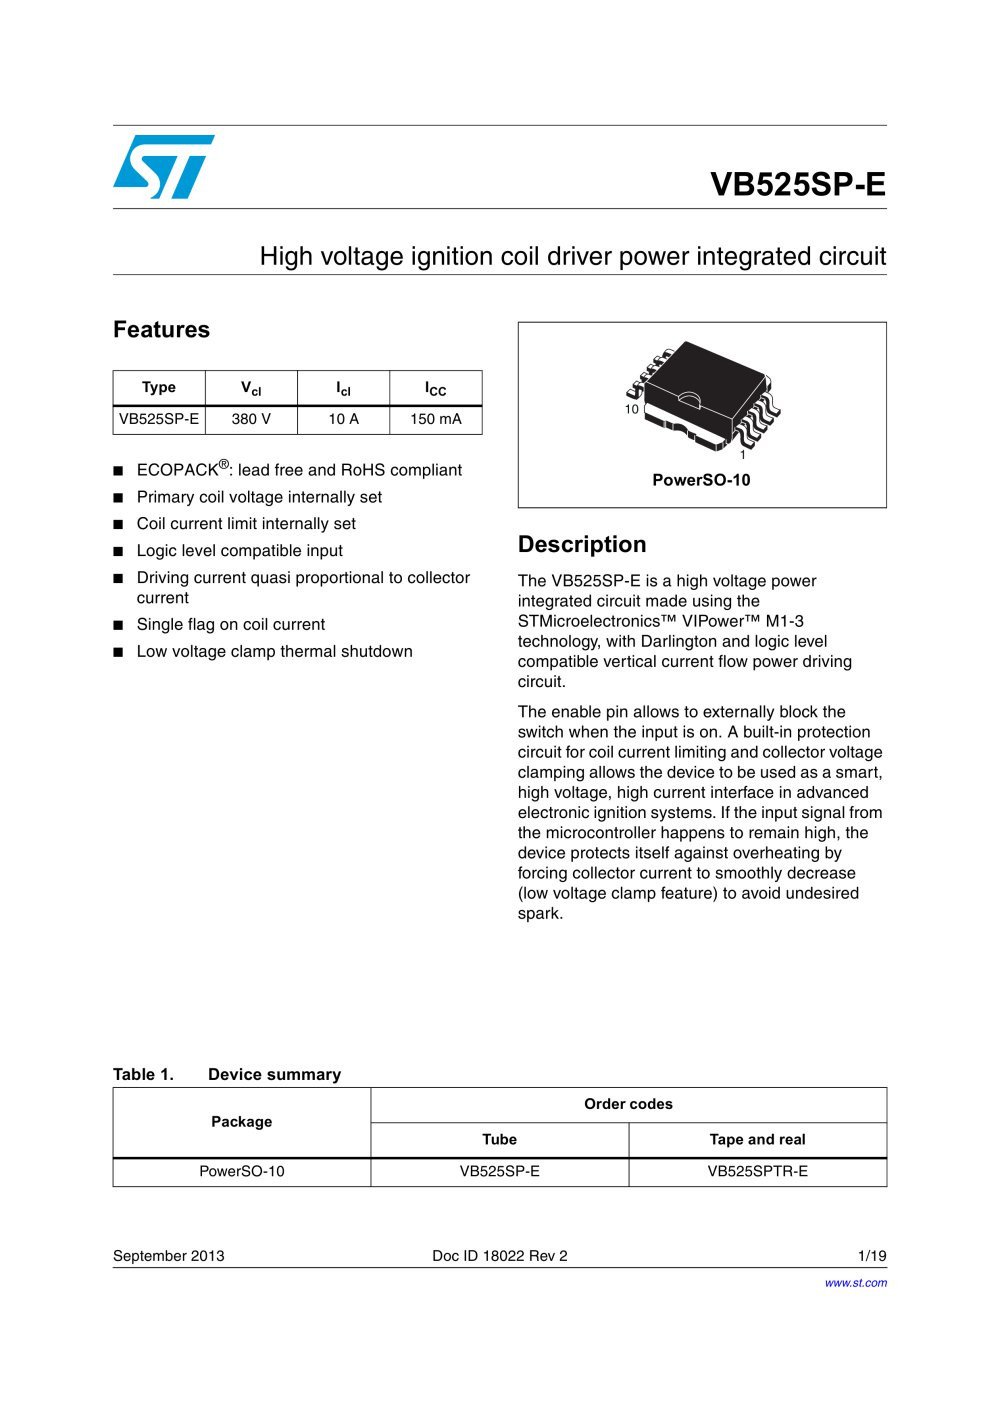 Vb525sp Ehigh Voltage Ignition Coil Driver Power Integrated Circuit 380v Single Line Wiring Diagram 1 19 Pages